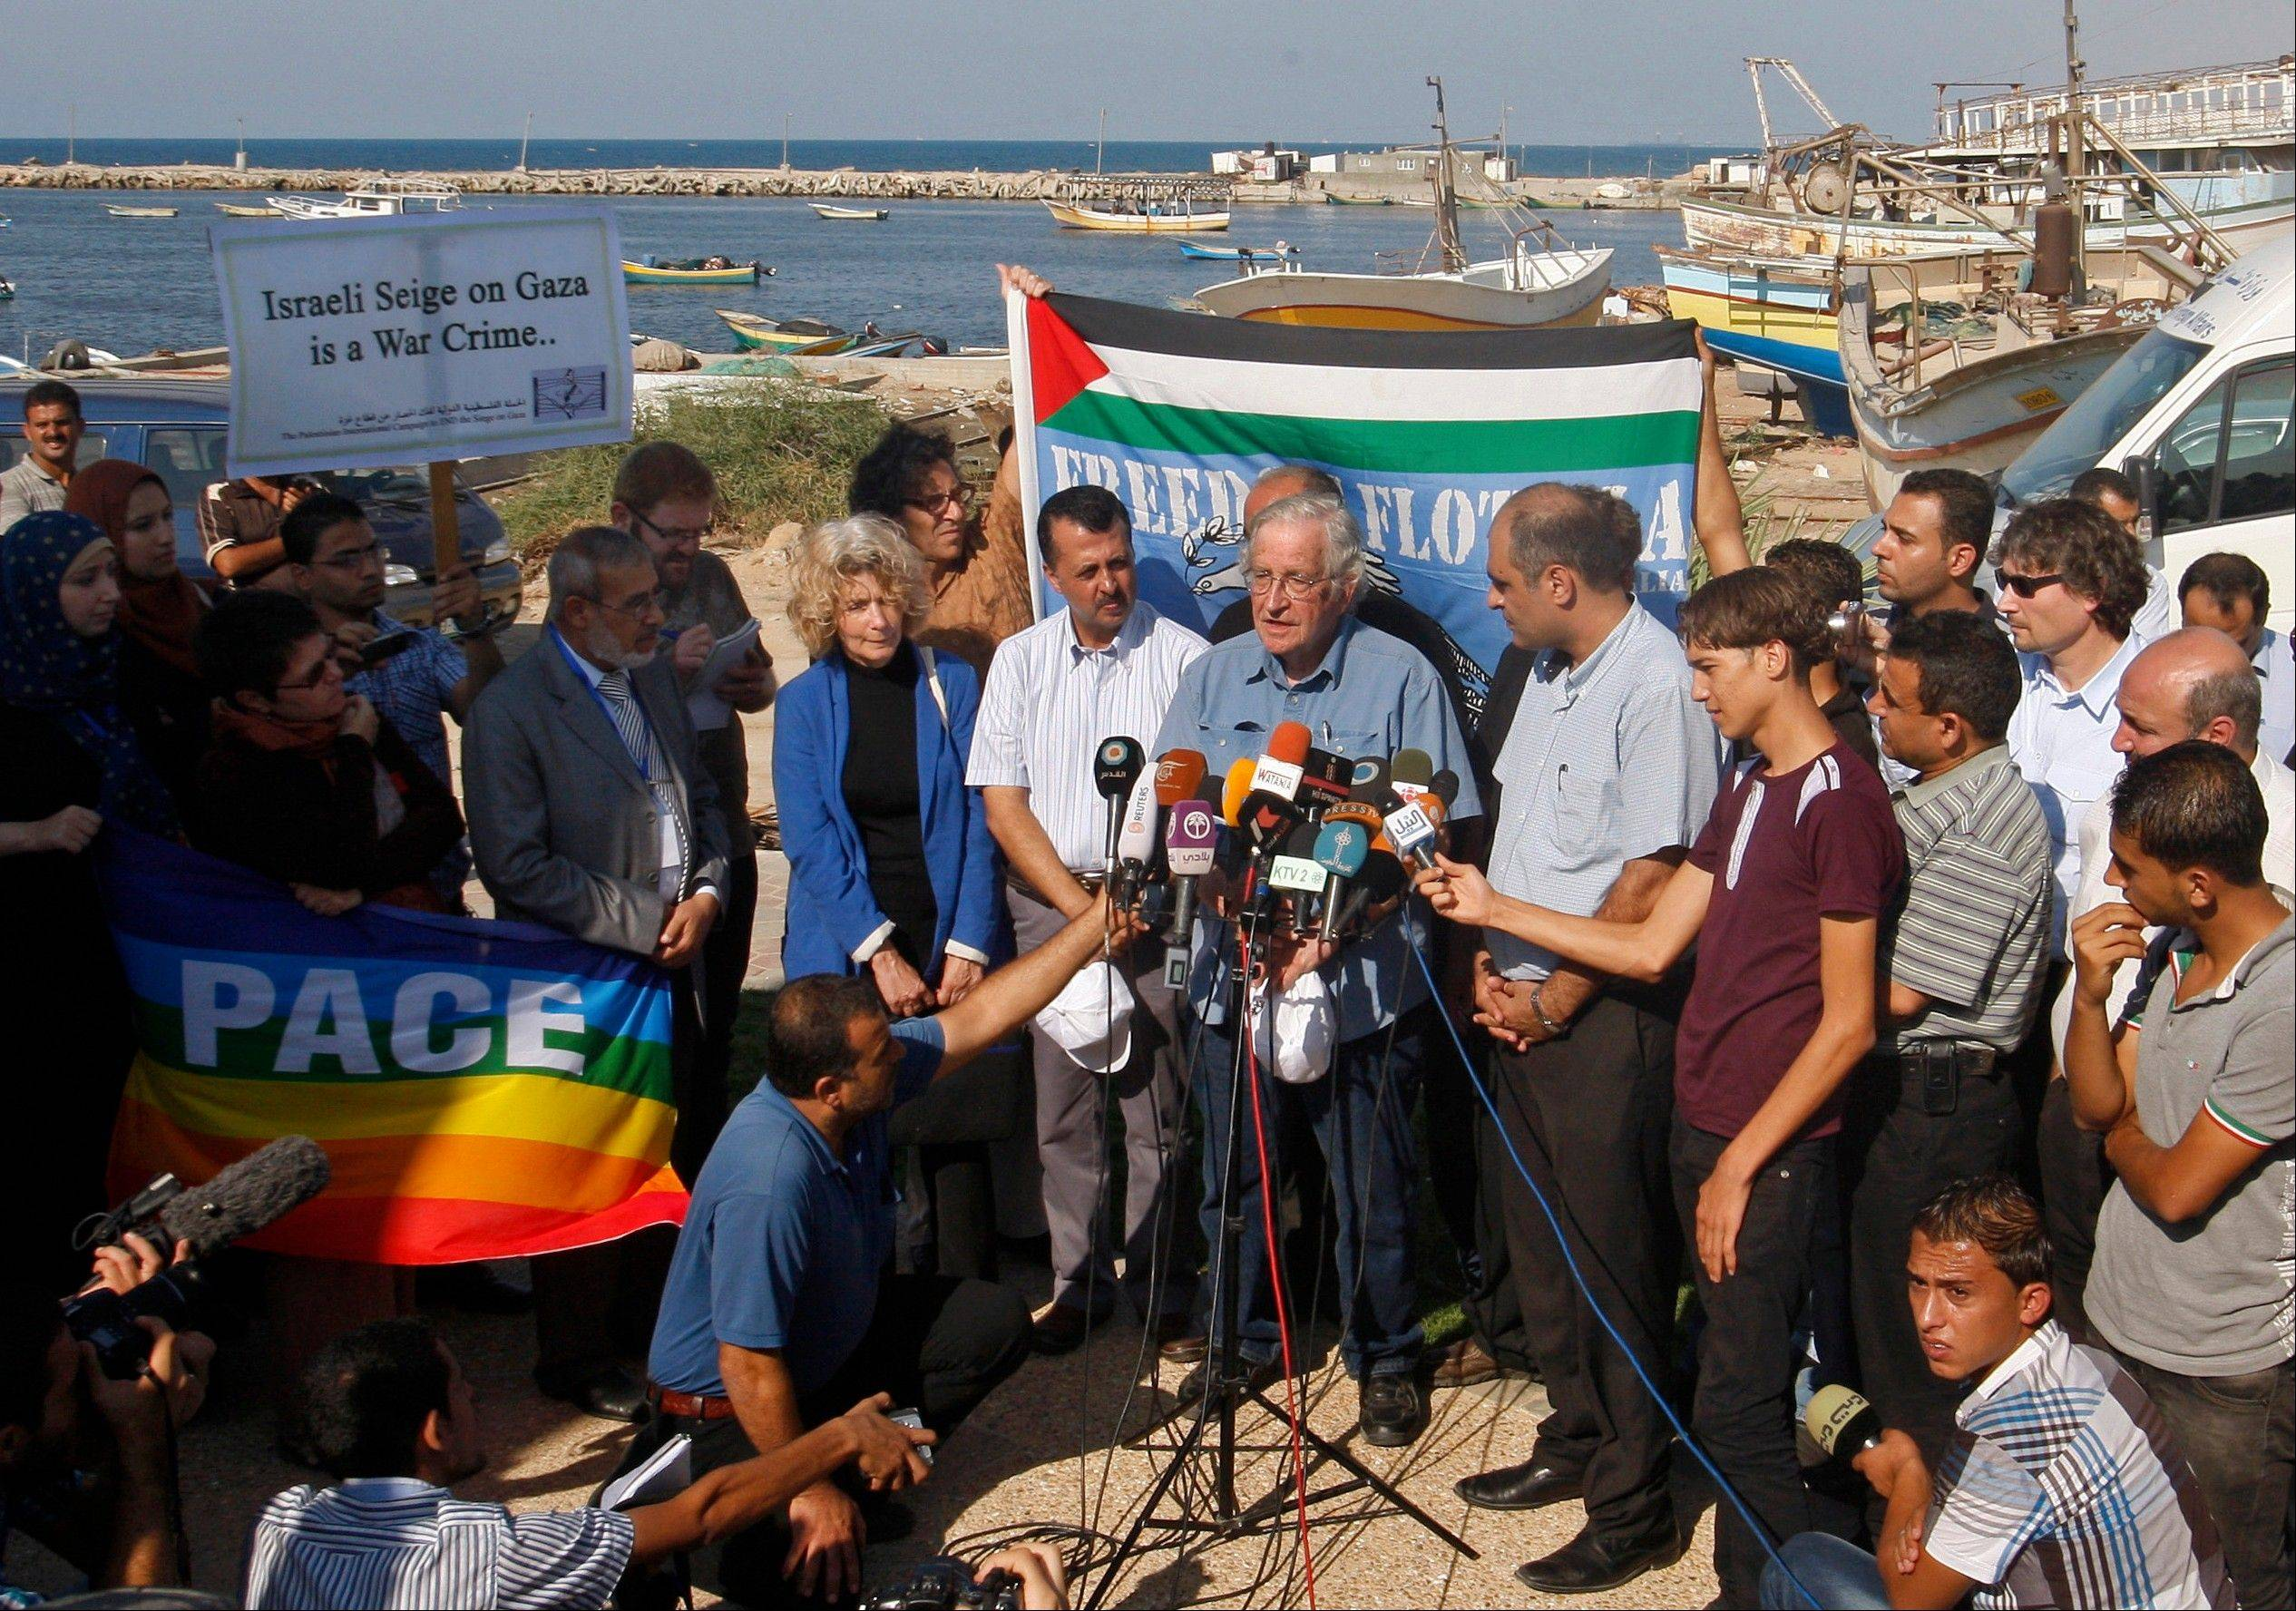 Jewish-American scholar and activist Noam Chomsky speaks out after Israeli soldiers commandeered a vessel carrying pro-Palestinian activists destined for Gaza on Saturday.